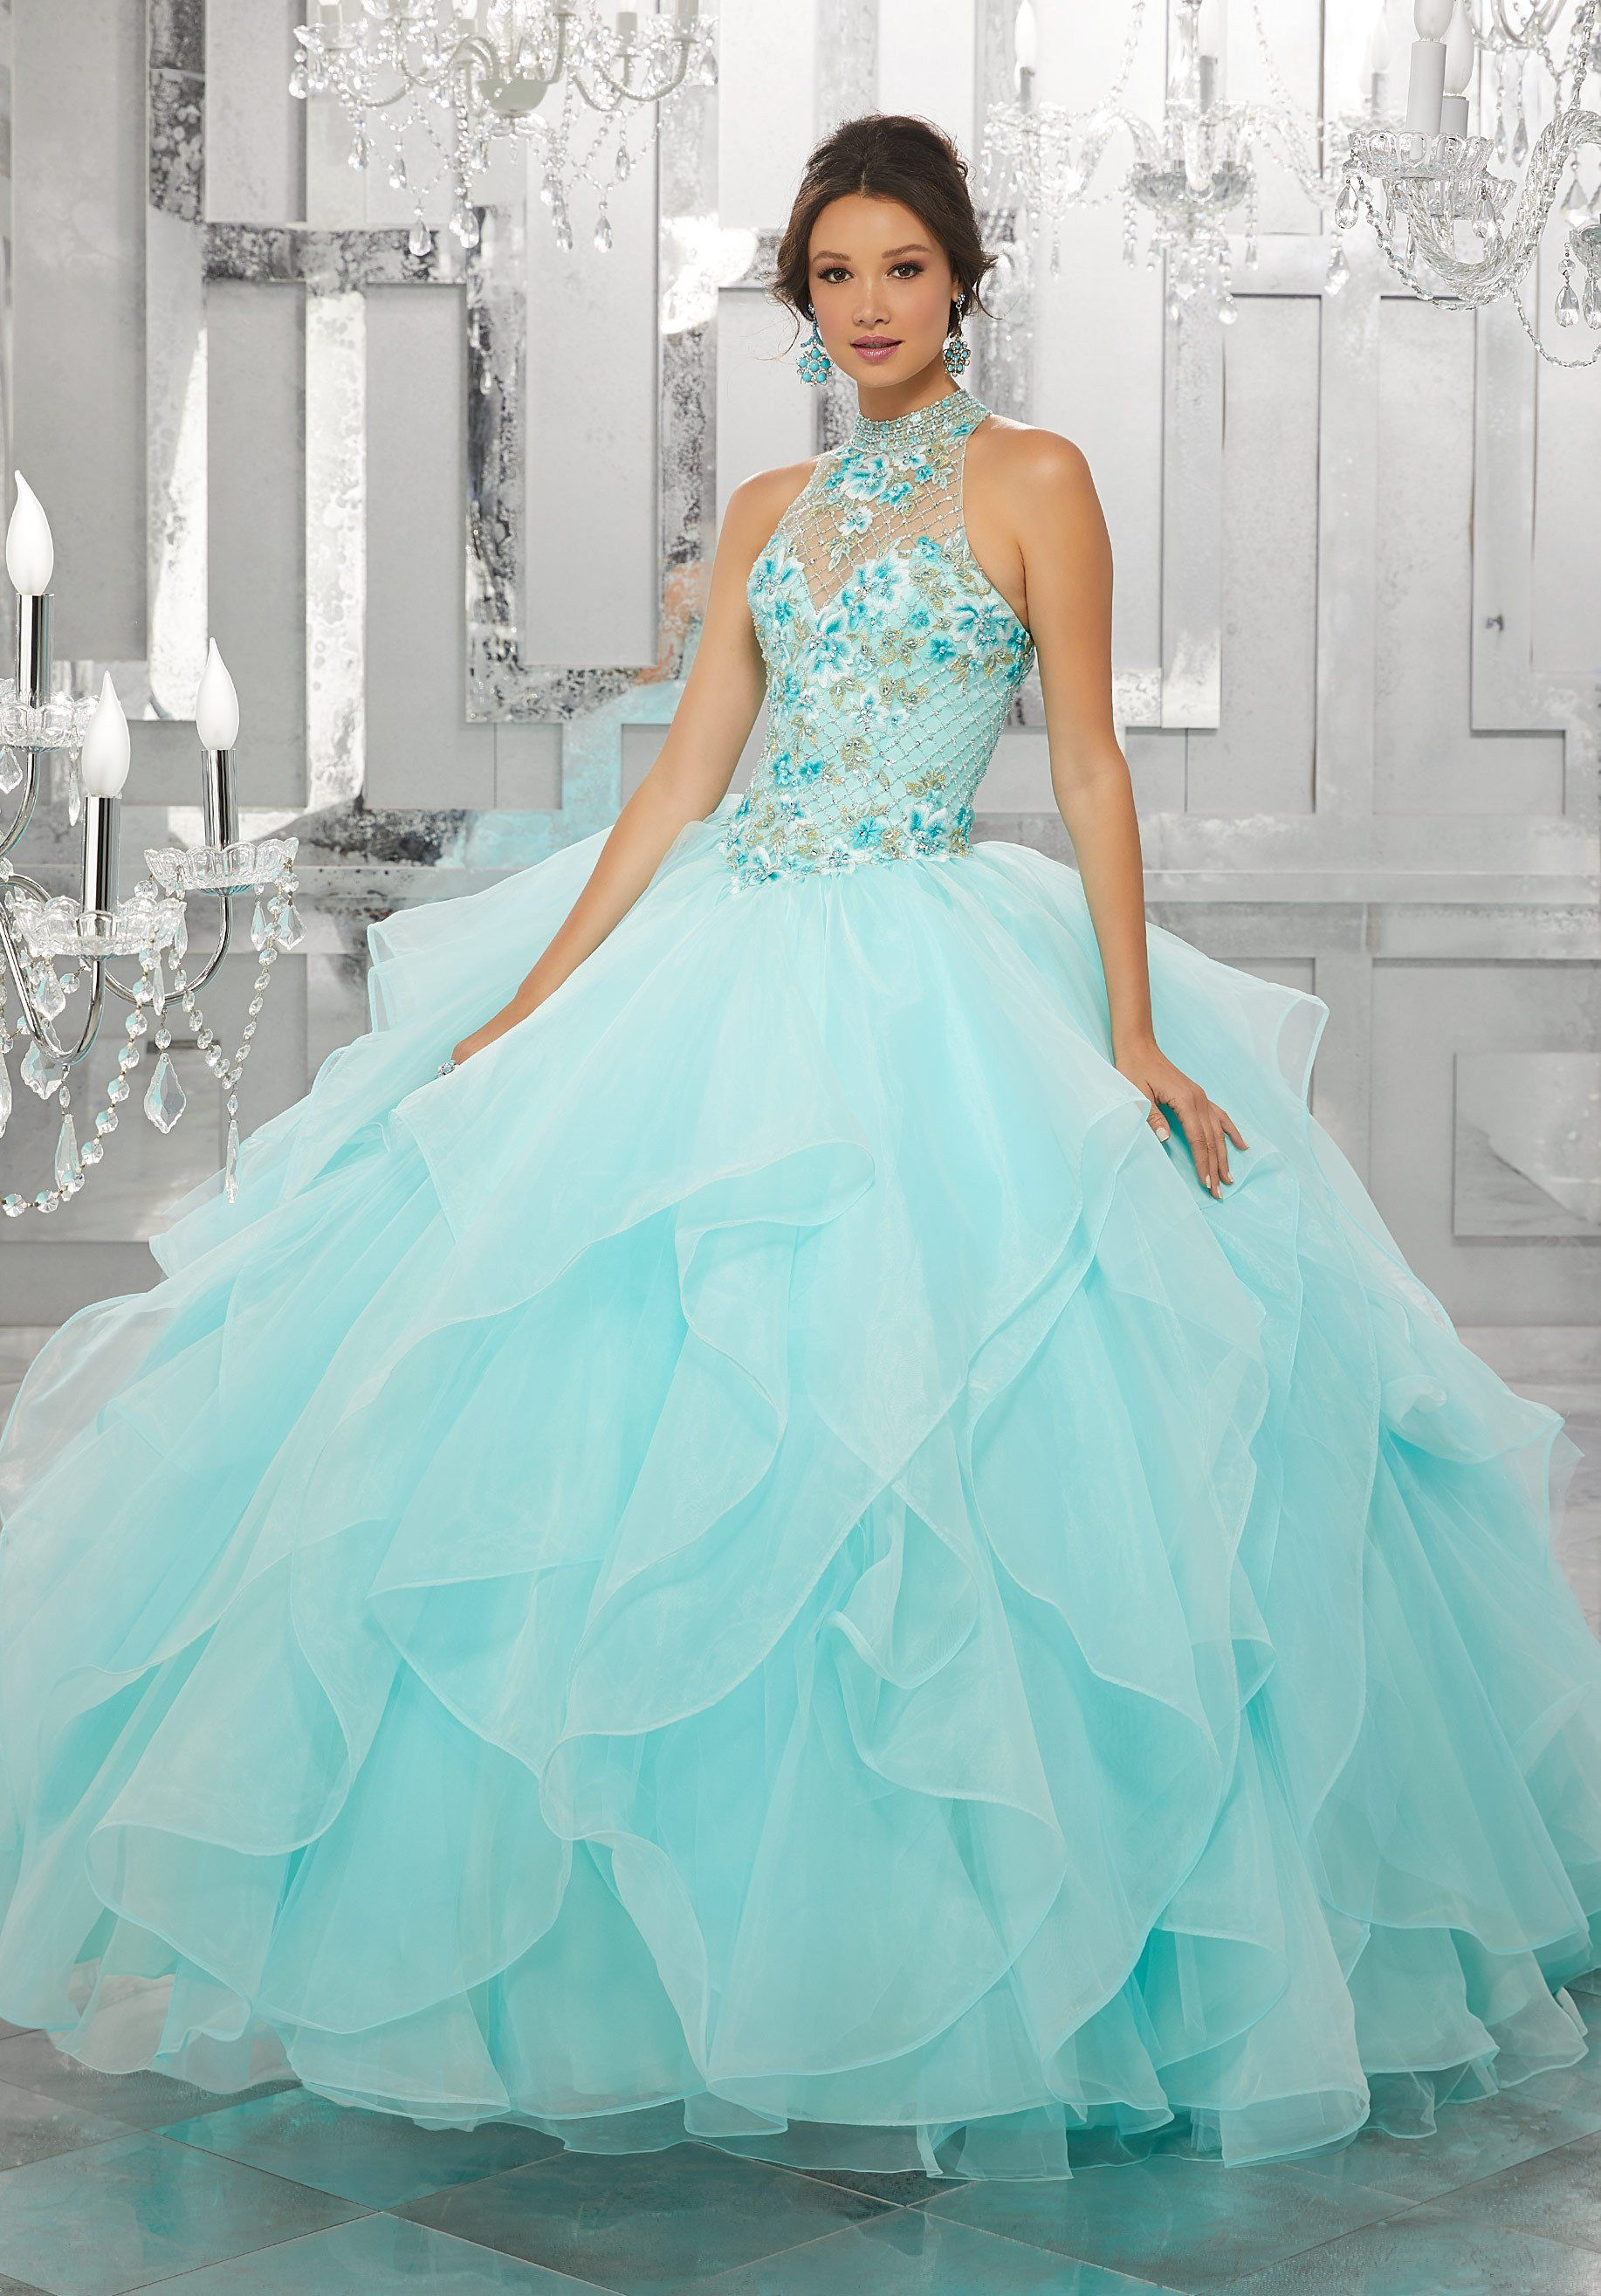 2a8bffac9e Floral Embroidered Quinceanera Dress by Mori Lee Vizcaya 89149 in ...